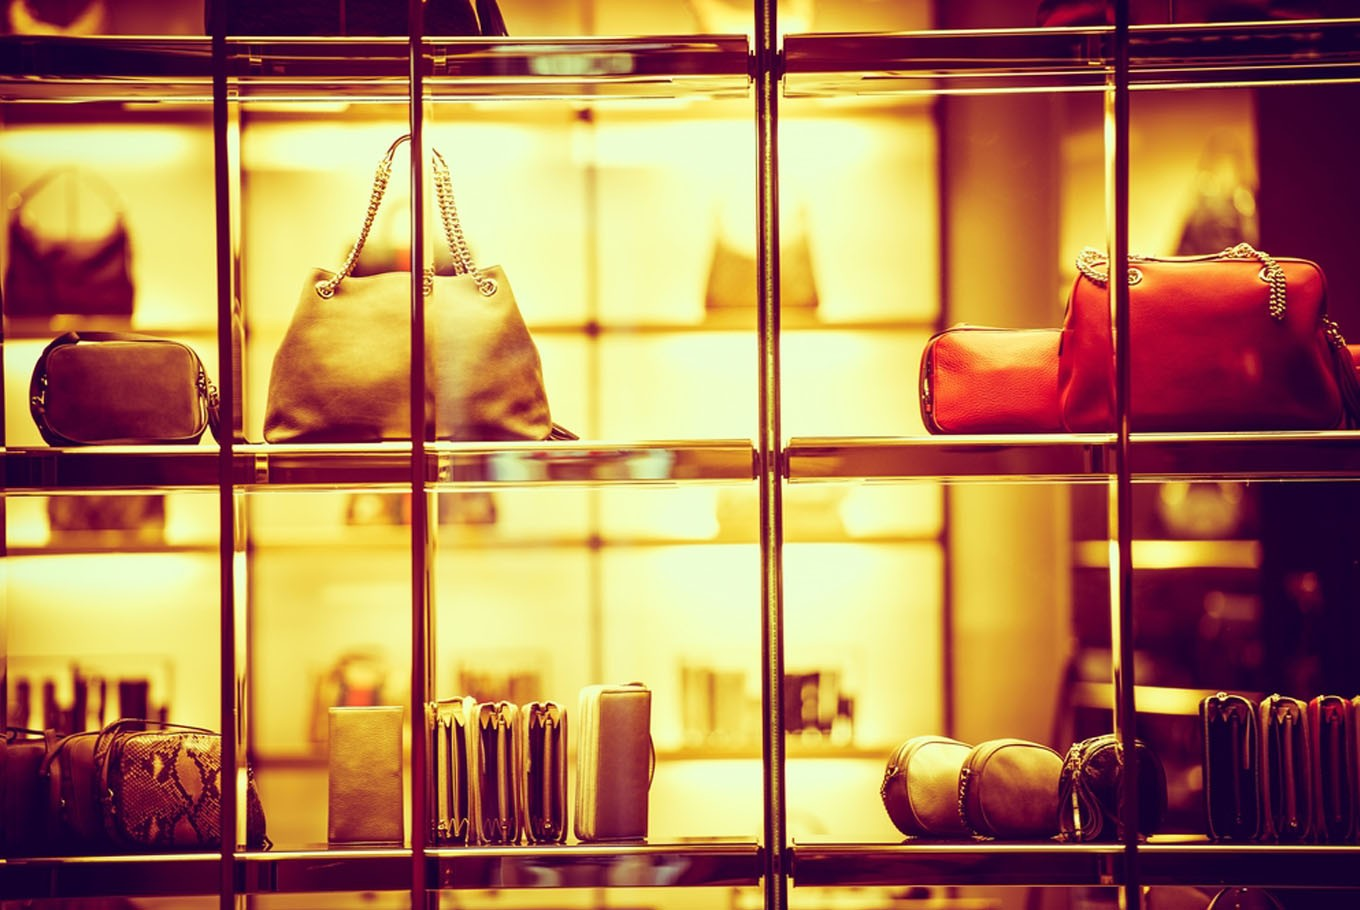 Indonesia home to Asias largest online luxury goods sales Report